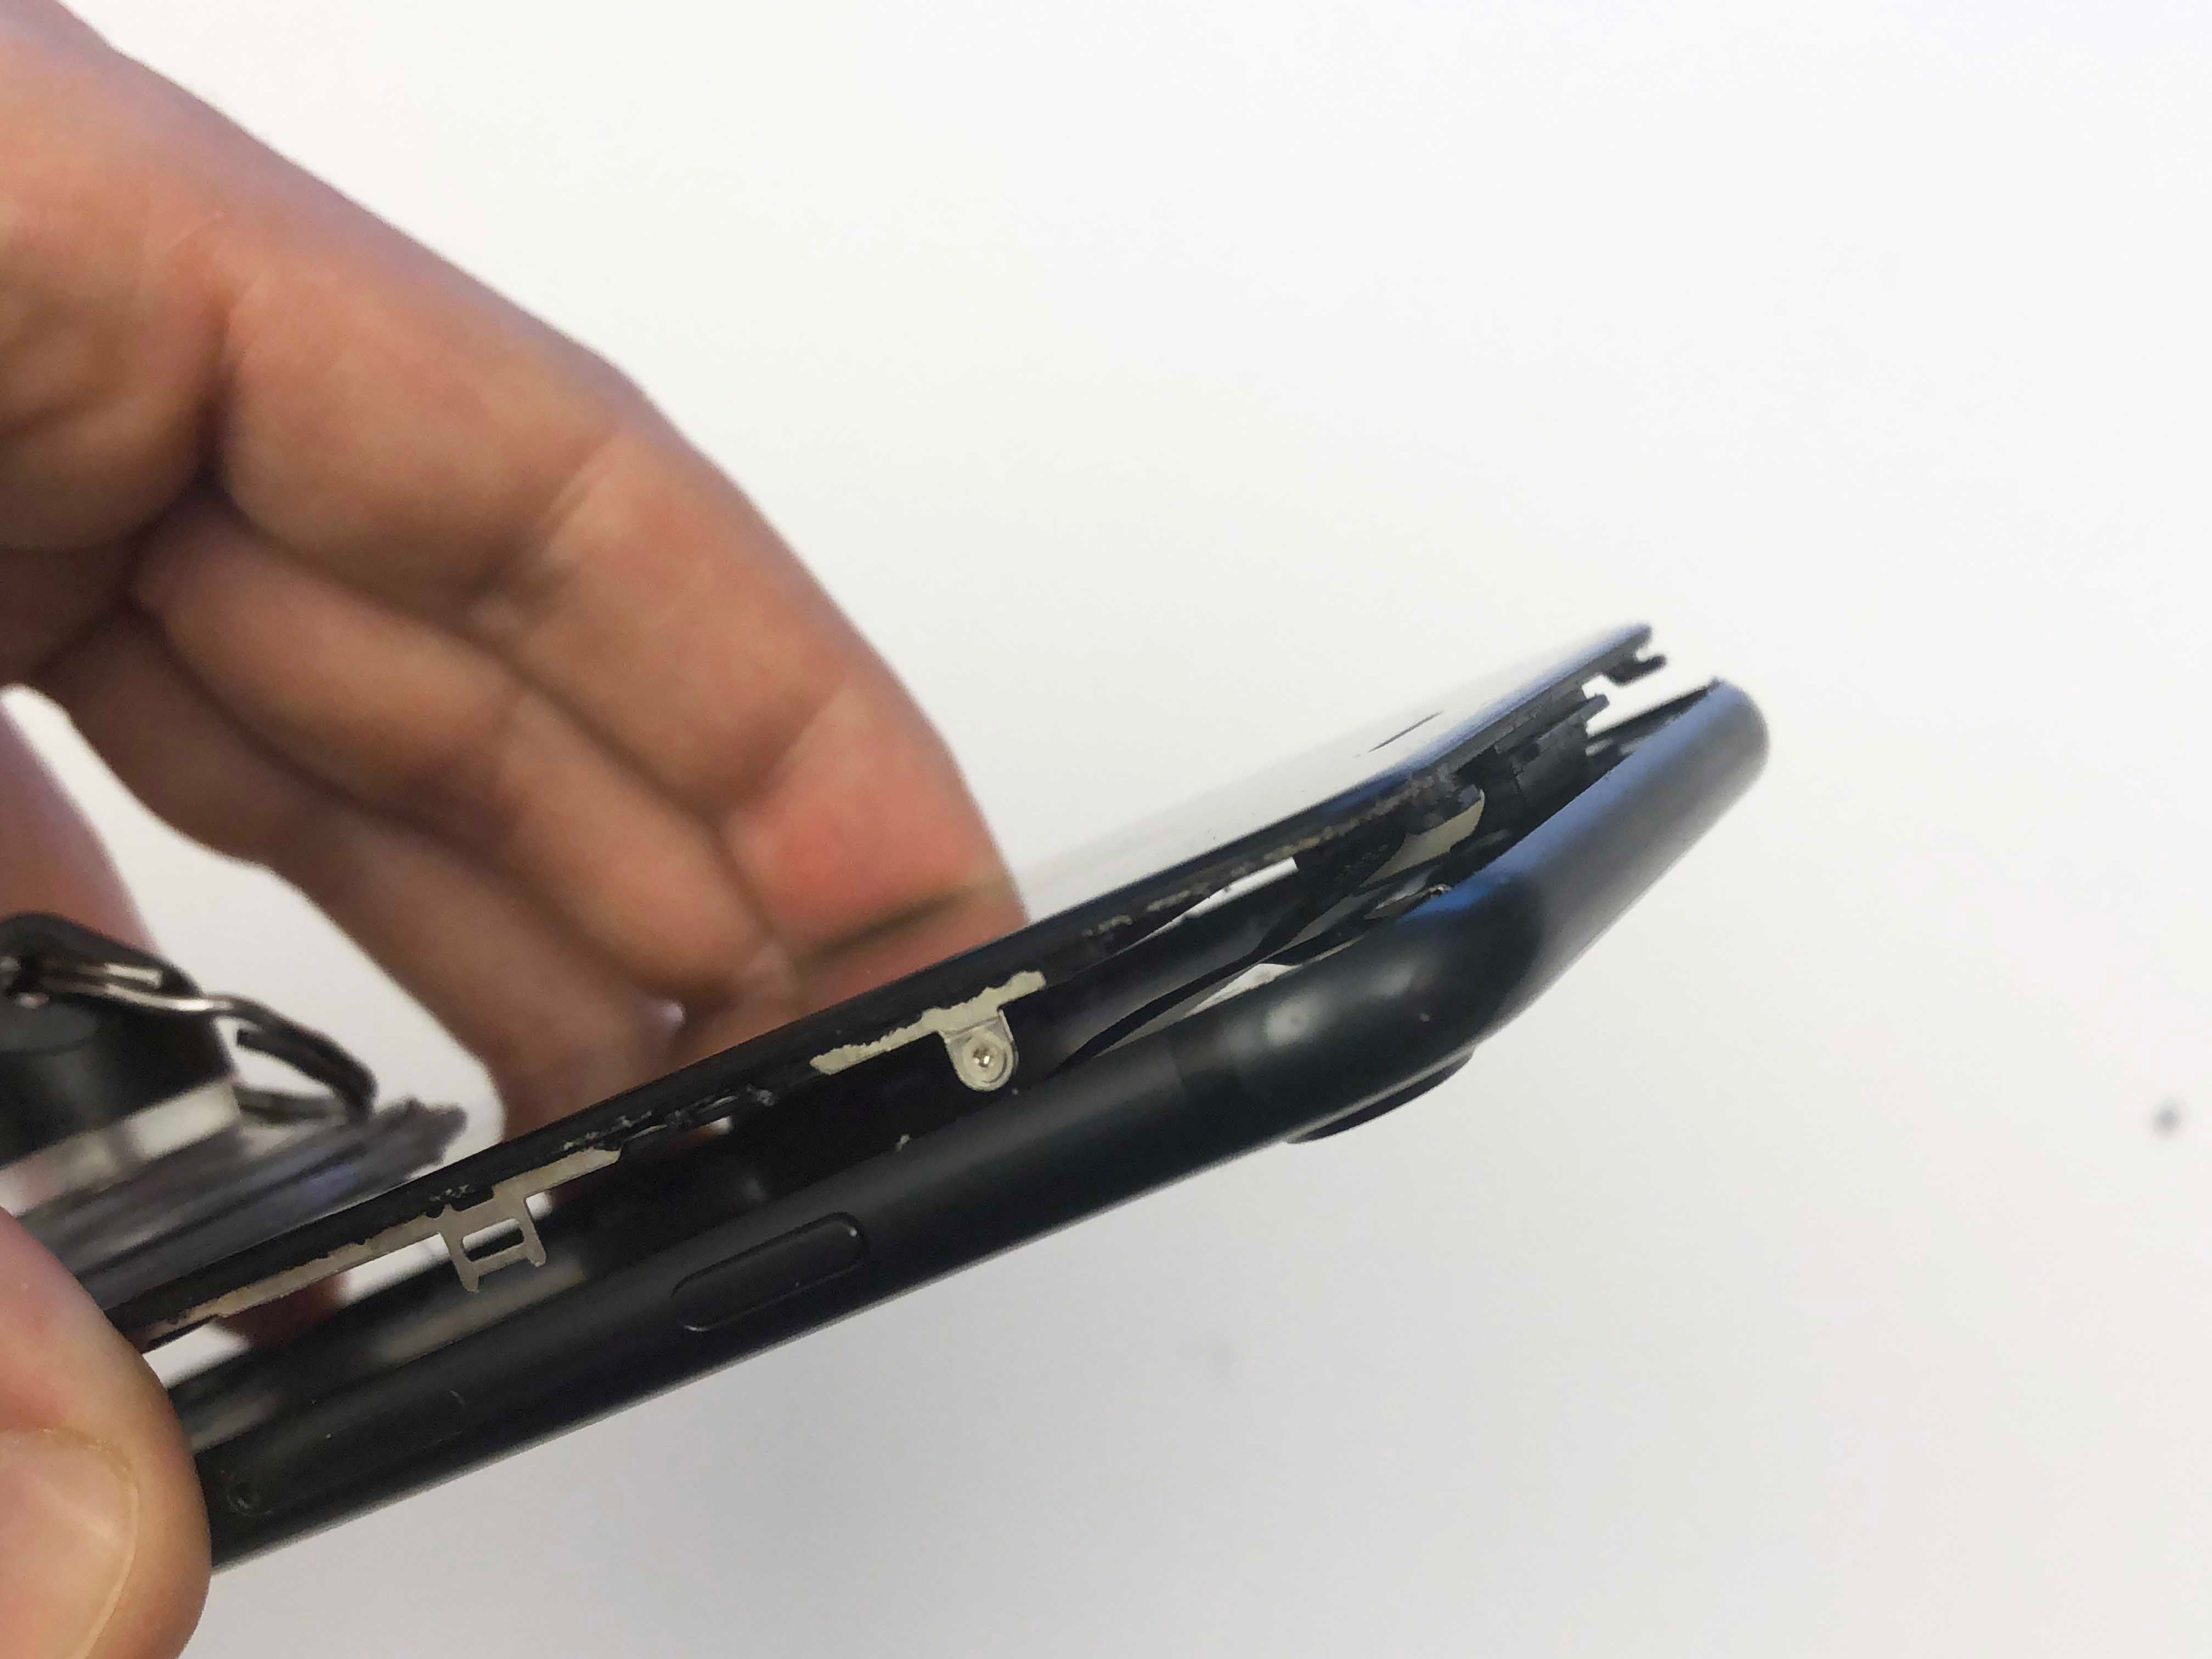 Phone 7/7 Plus Battery Replacement - Opening the phone screen - 2